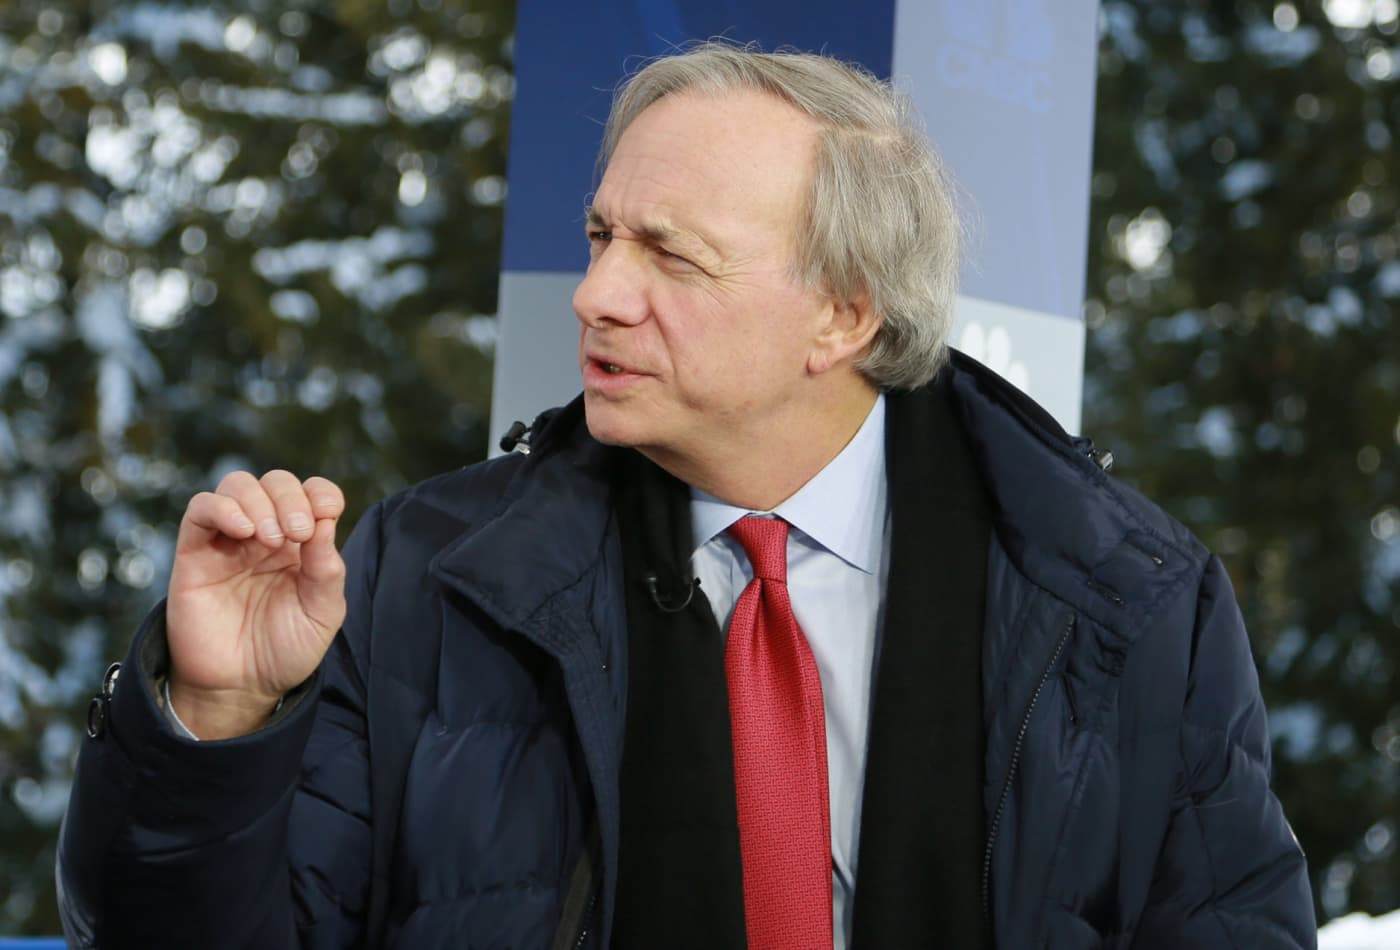 Billionaire Ray Dalio: Quit these 4 bad habits to start actually achieving your goals